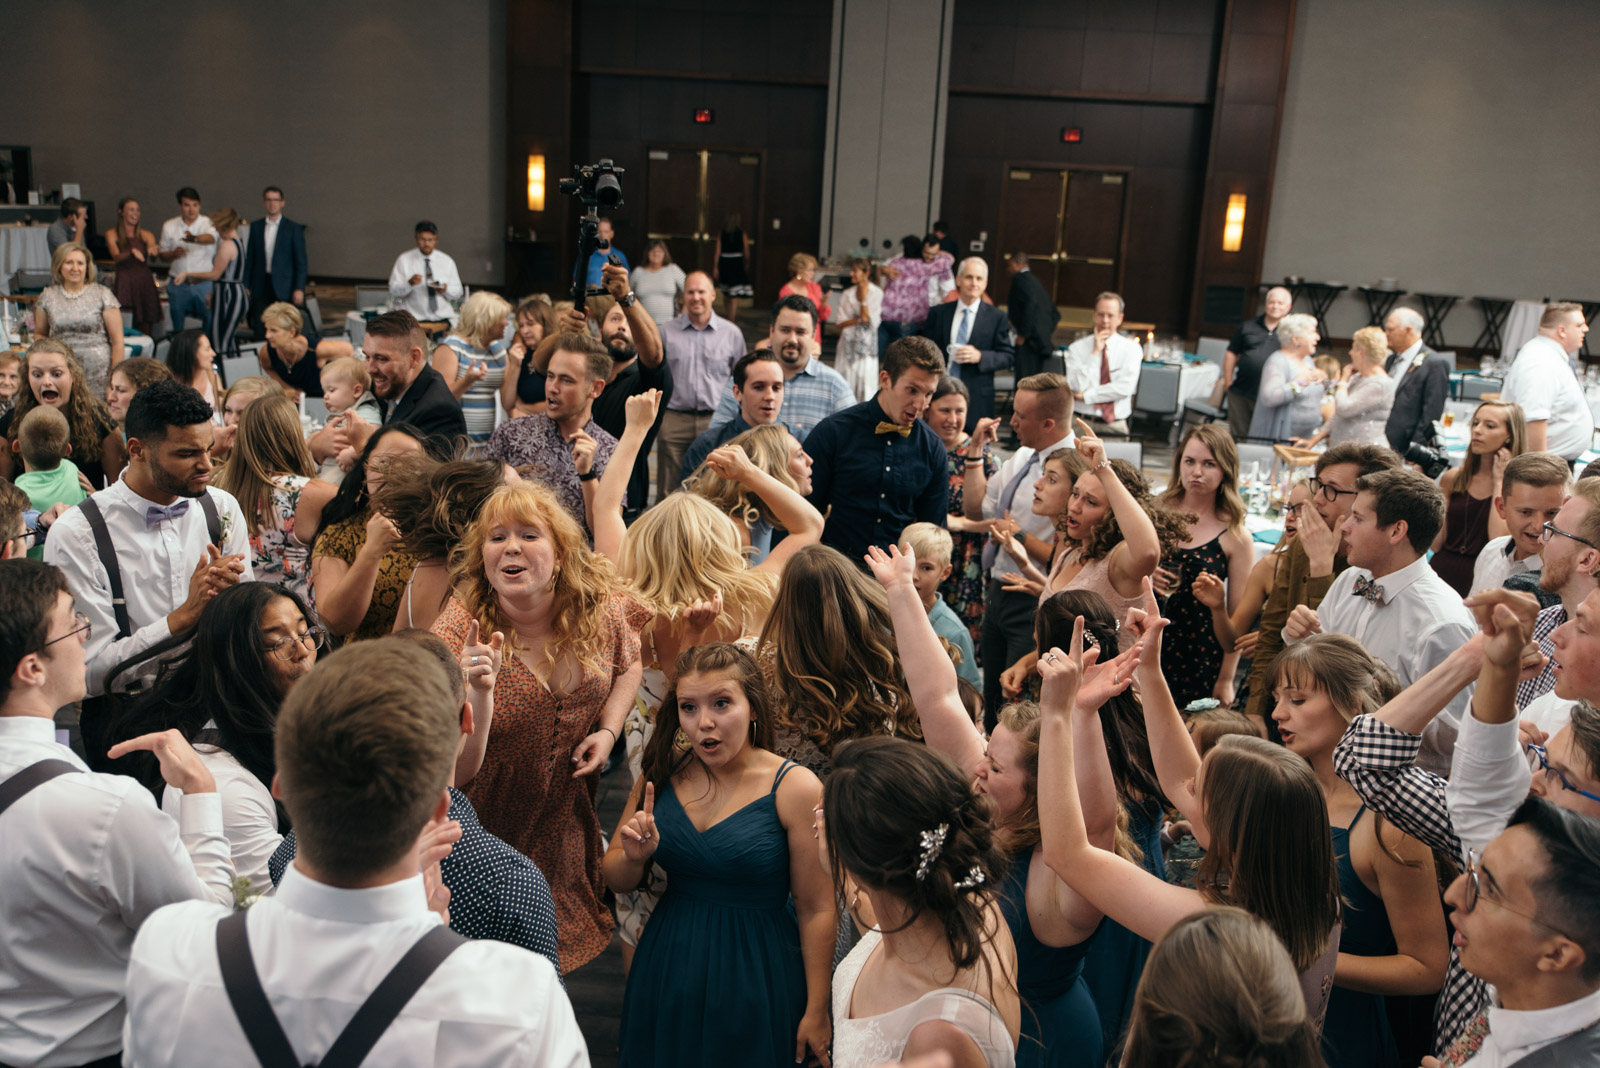 wedding guests dancing at Coralville Marriott Hotel wedding recepition